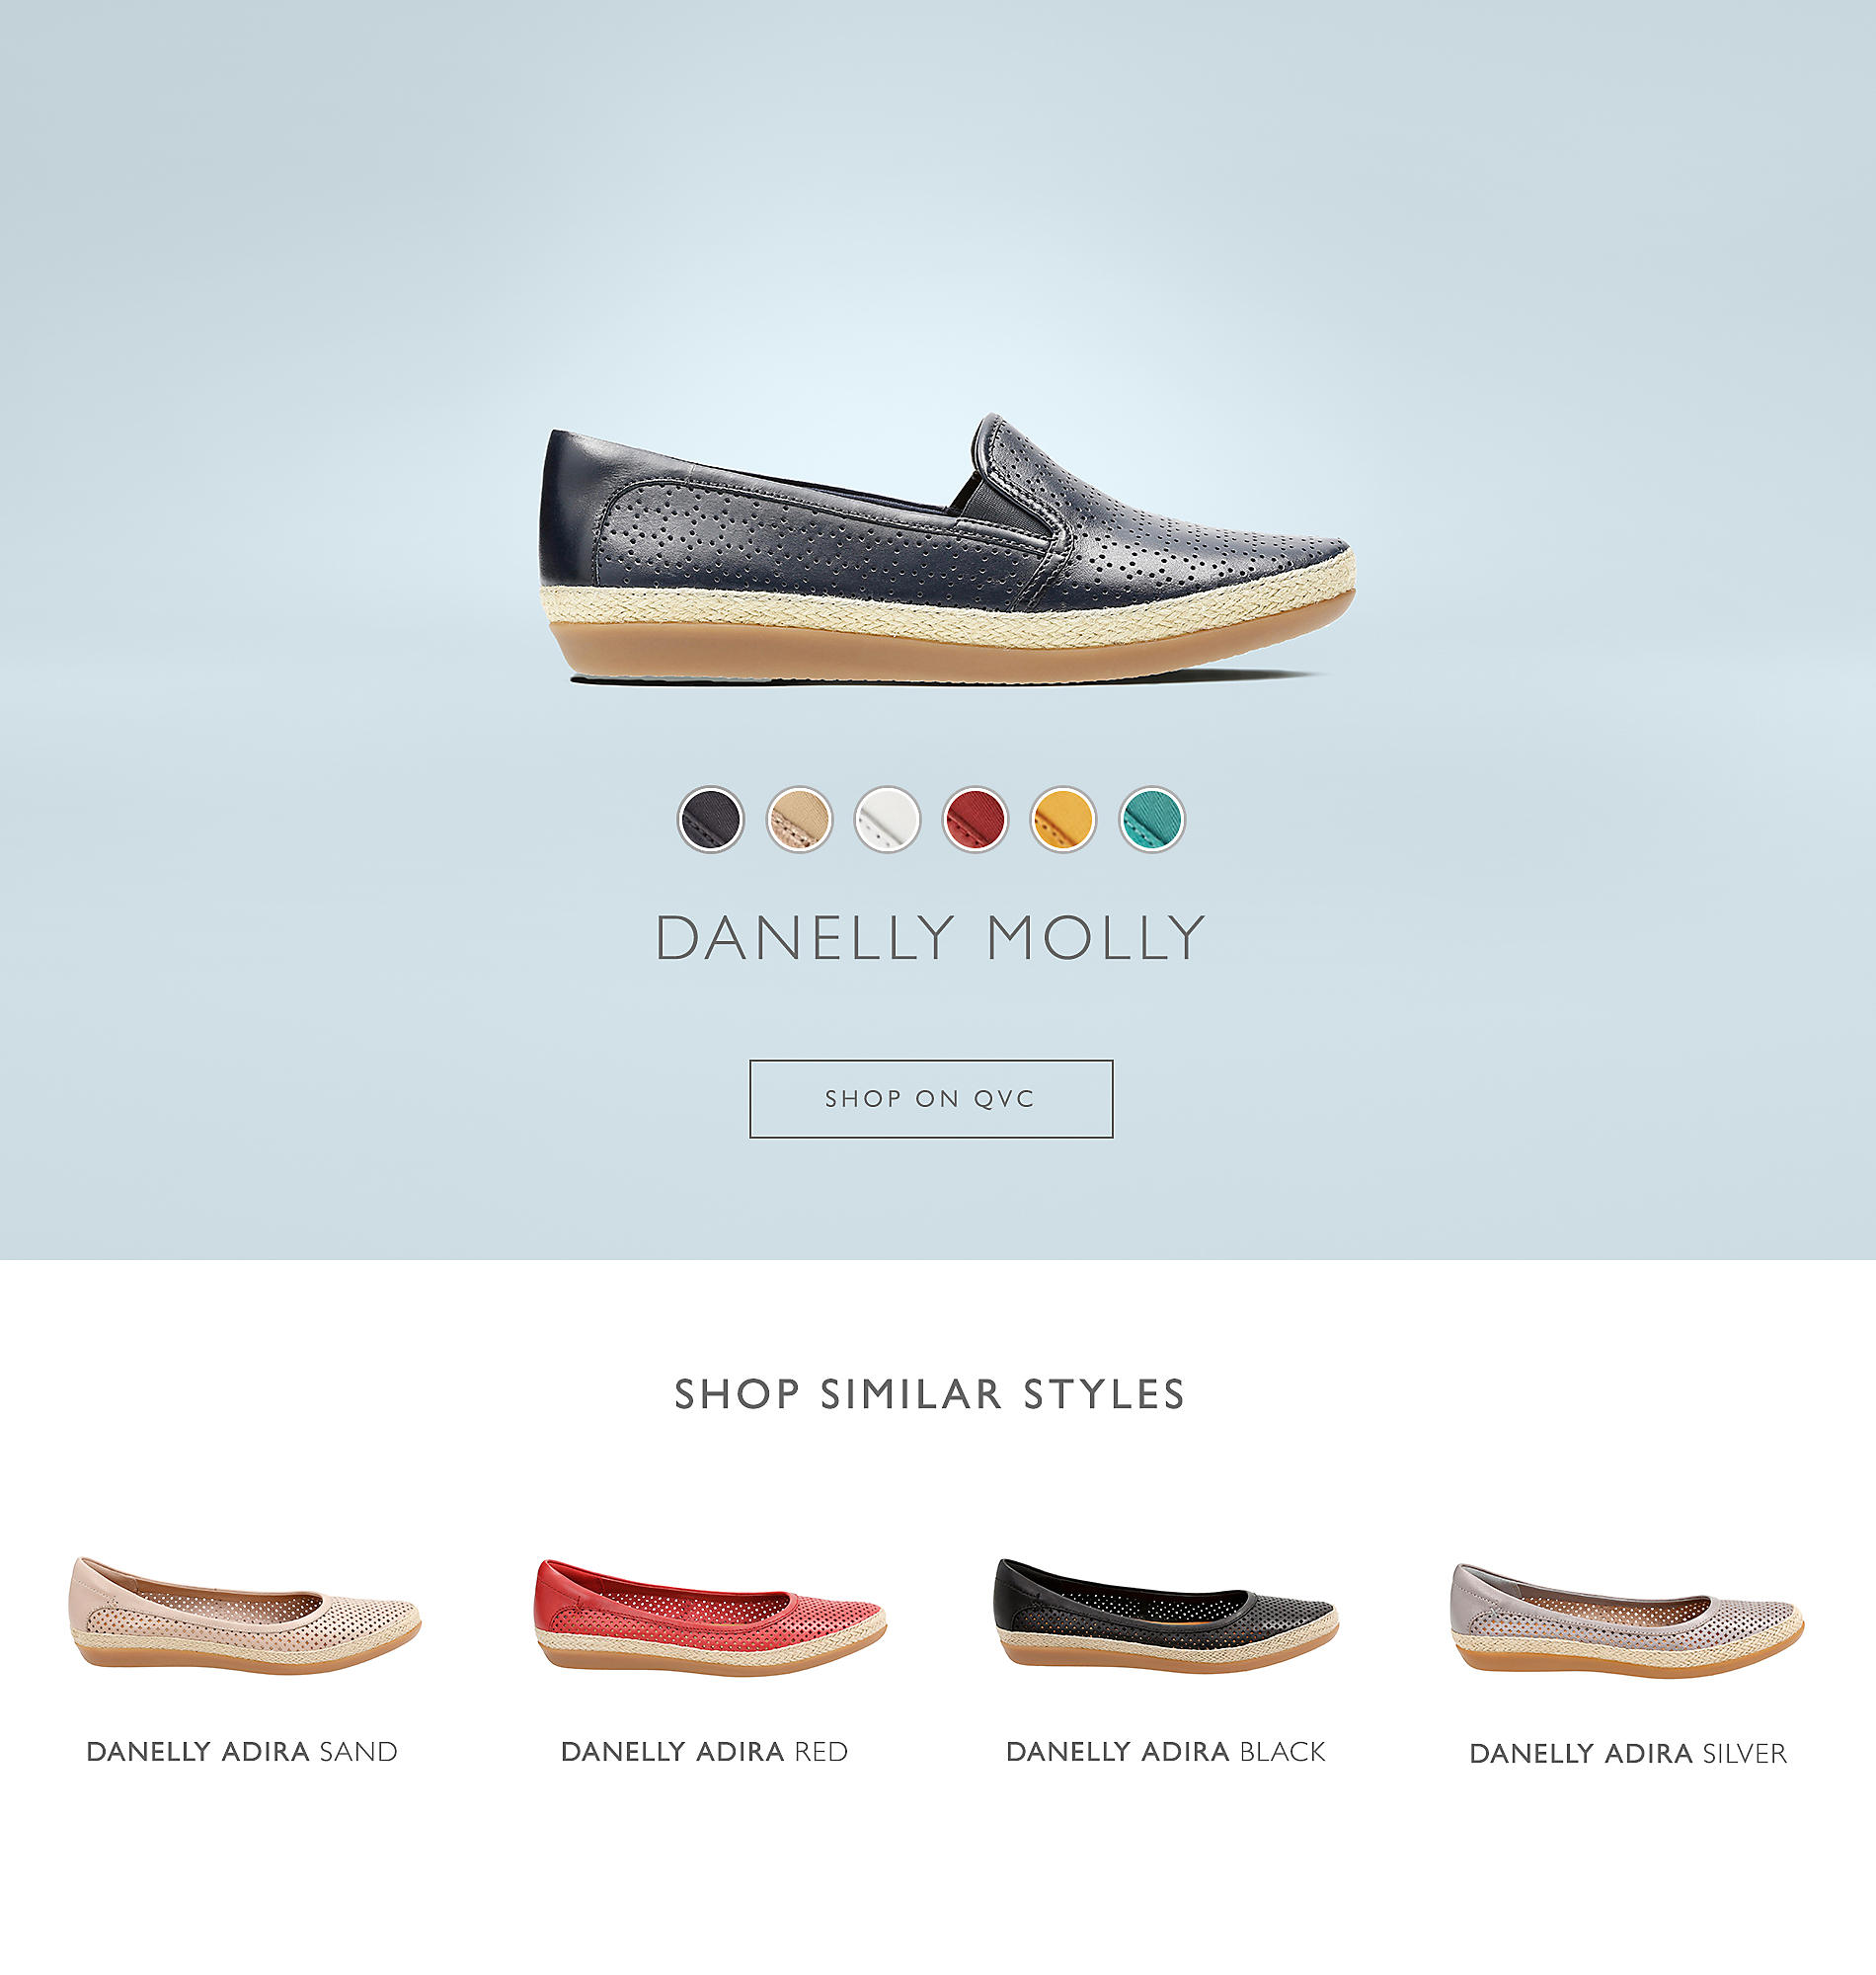 Shop QVC Danelly Molly